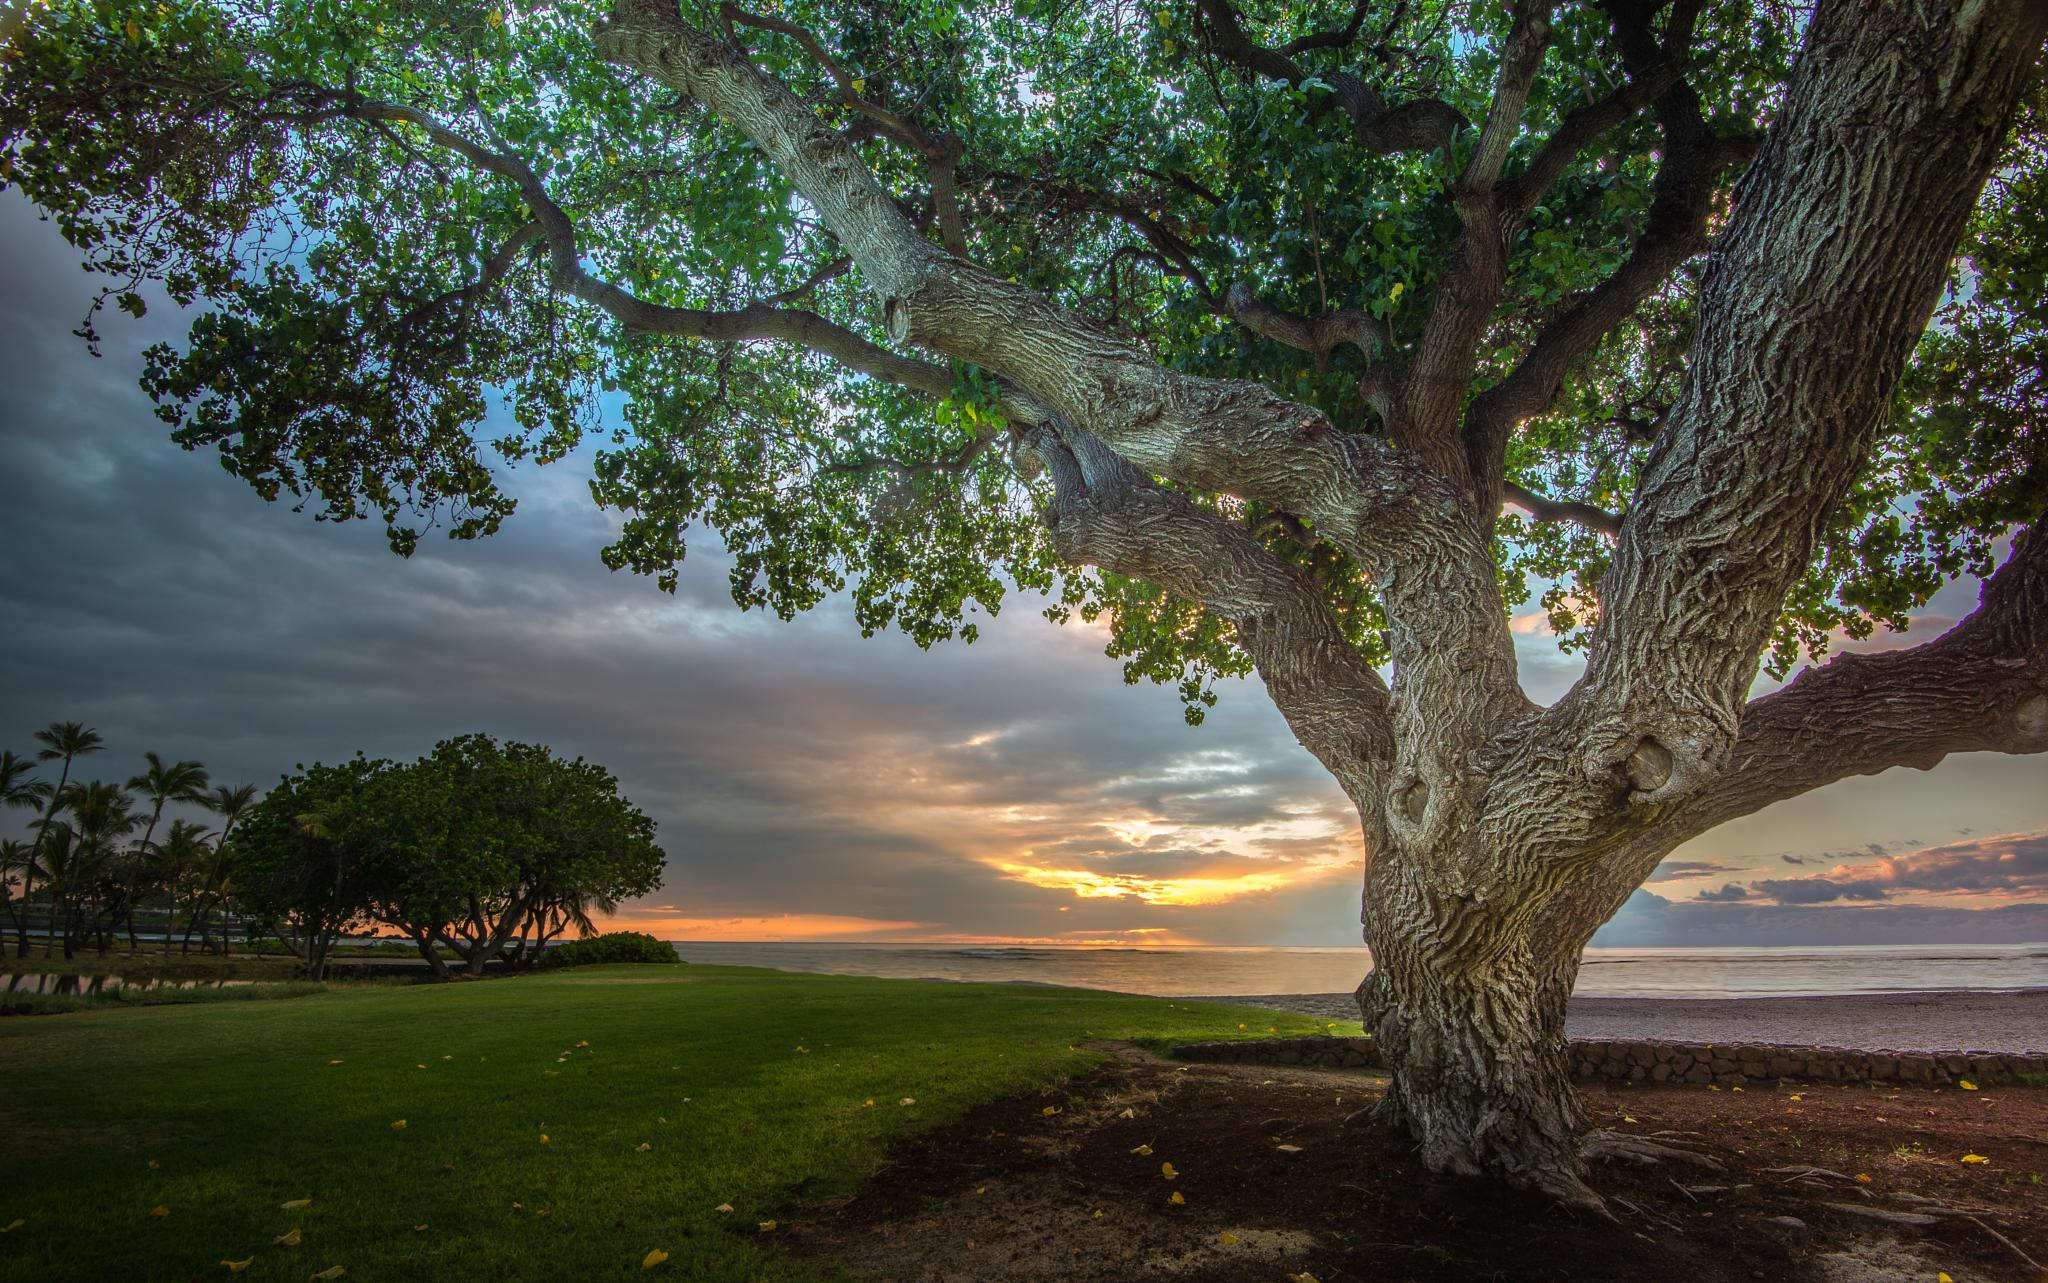 The tree by the ocean by Samuel Lethier